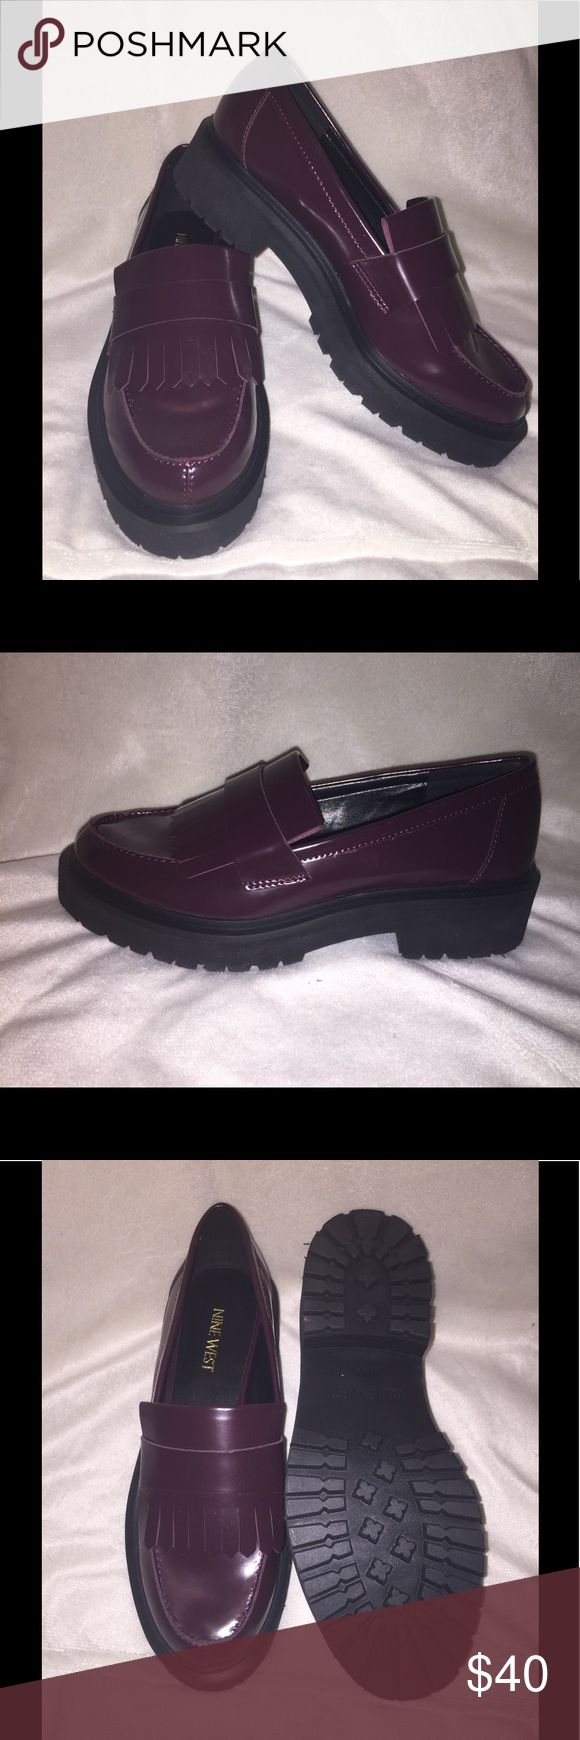 REDUCED! Maroon Chunky Loafer Brand new, never worn, trendy, chunky, maroon, loafers. Faux patent leather. NWOT. Look great with ripped jeans! Nine West Shoes